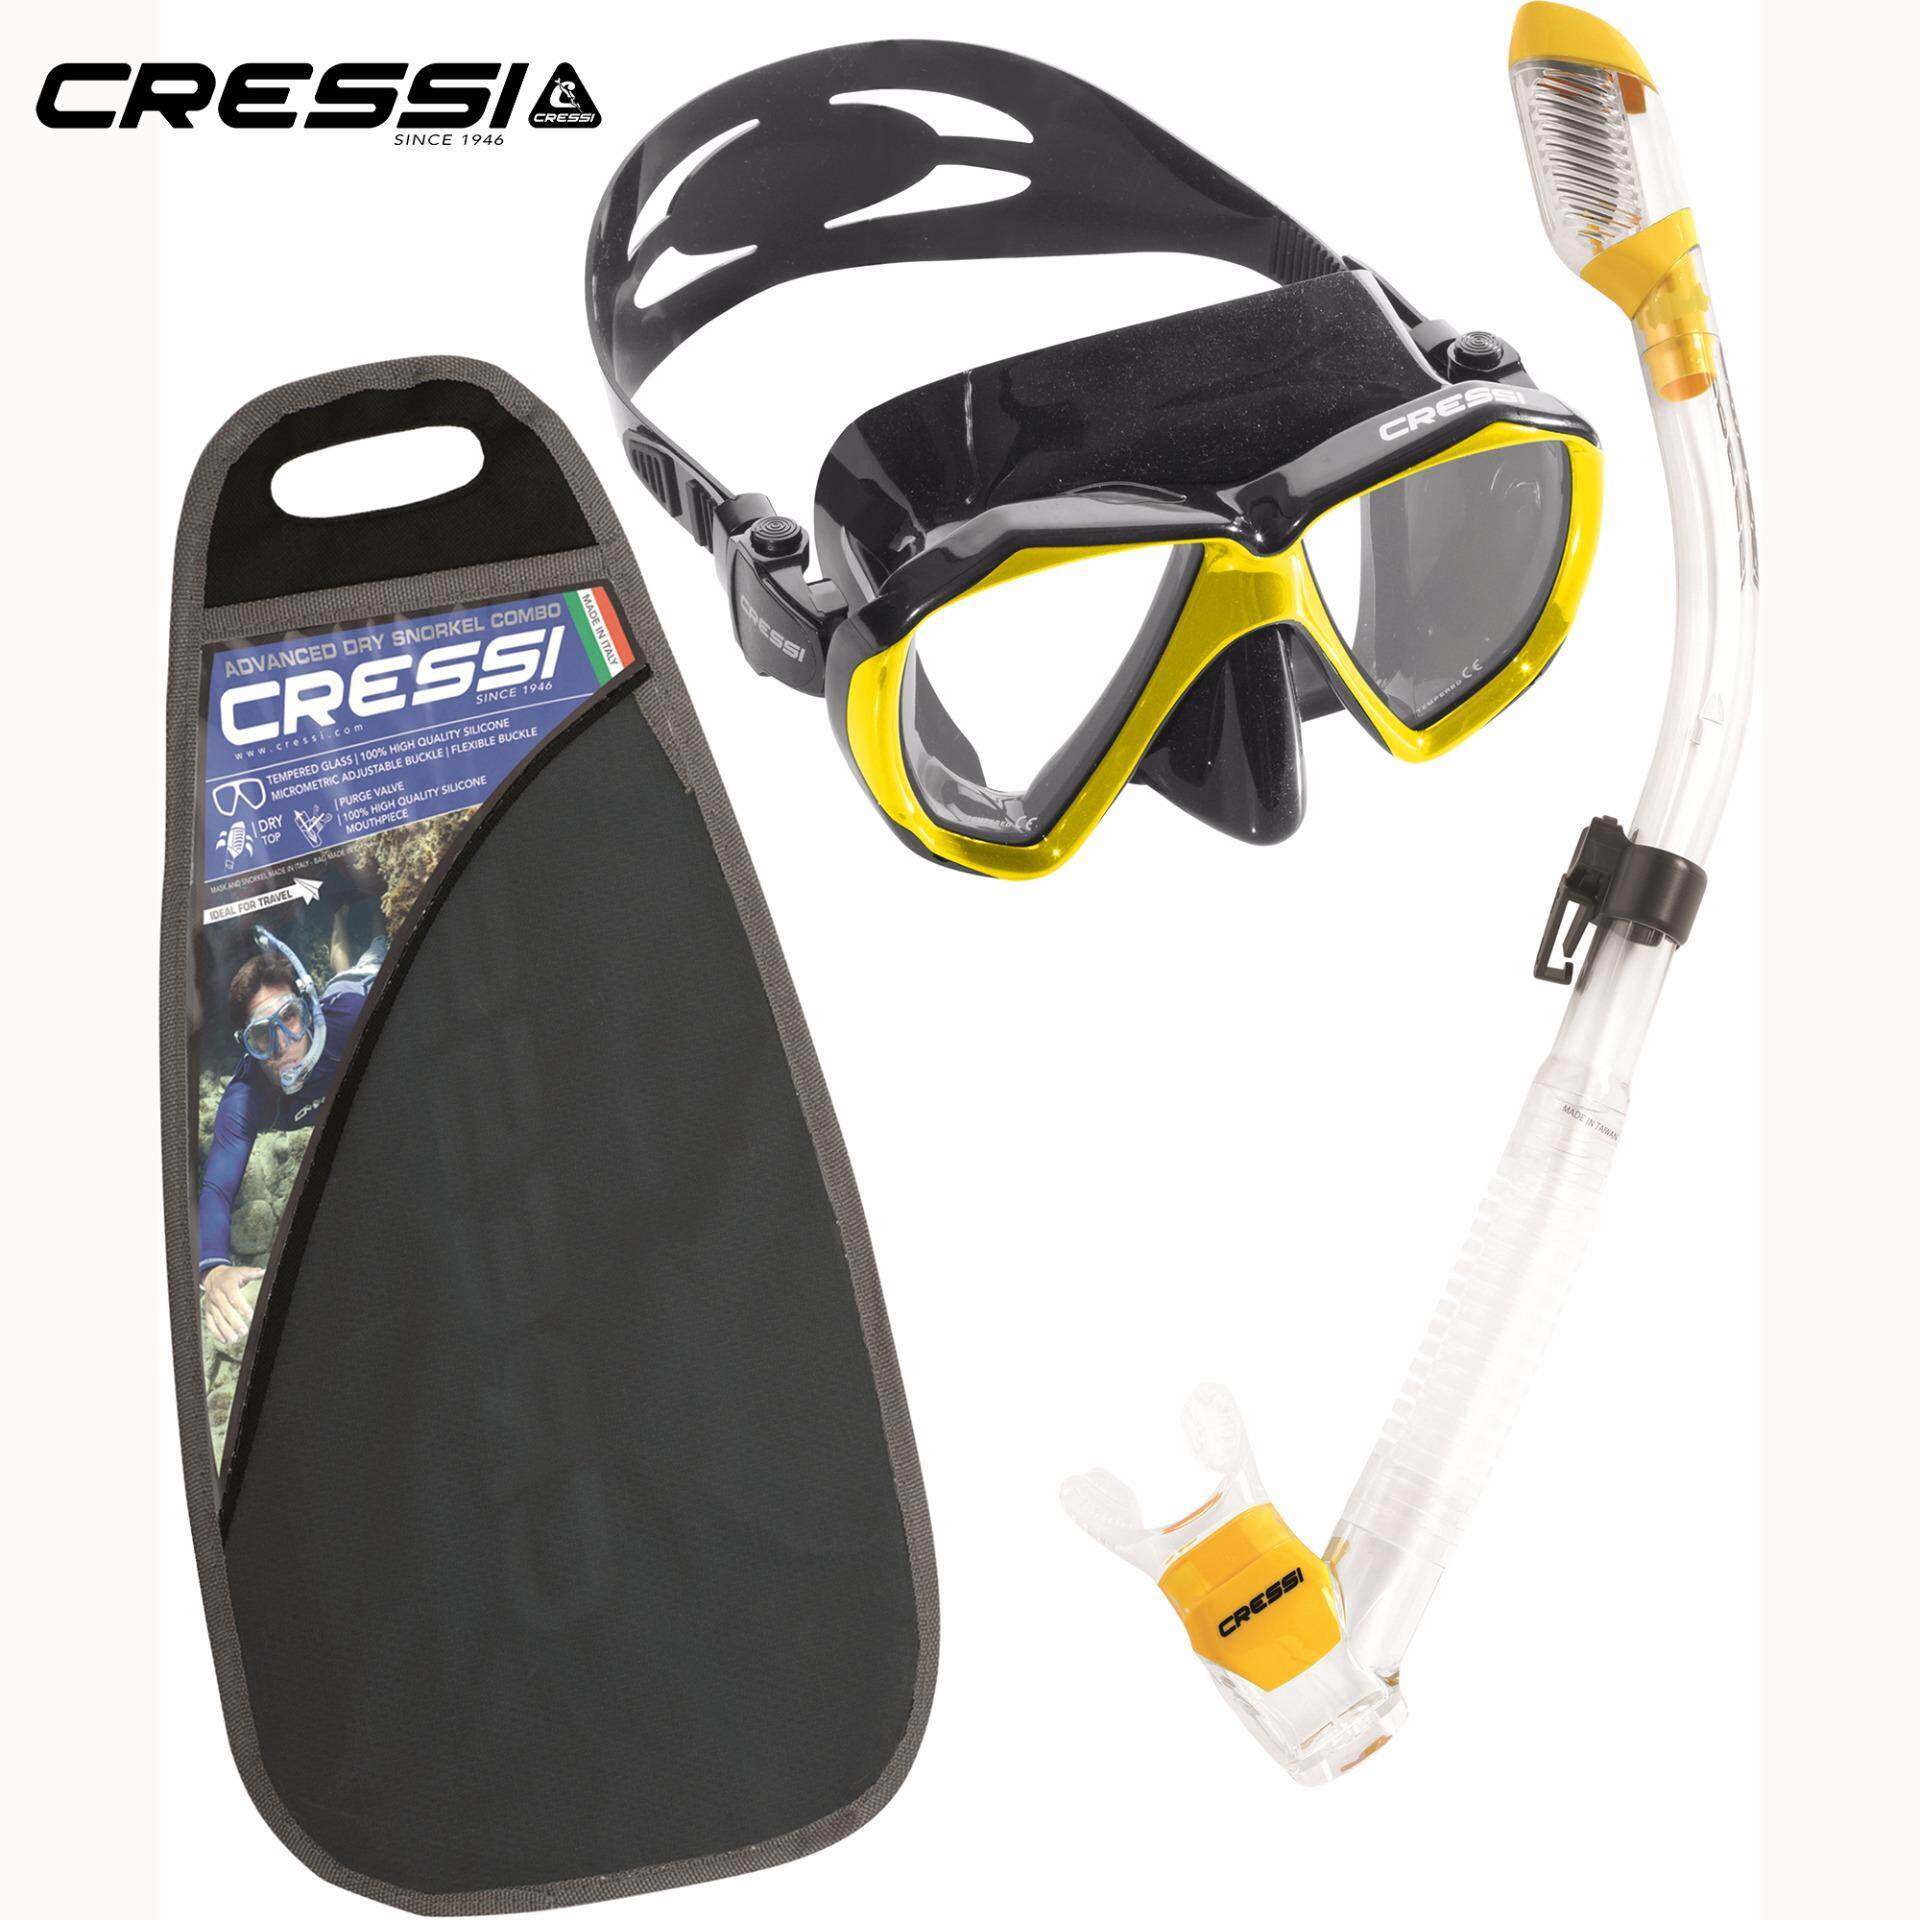 14aacb8a1906 Cressi RANGER DRY Snorkeling set Diving Mask Dry Snorkel Silicone Skirt  Tempered Glass lense Diving mask